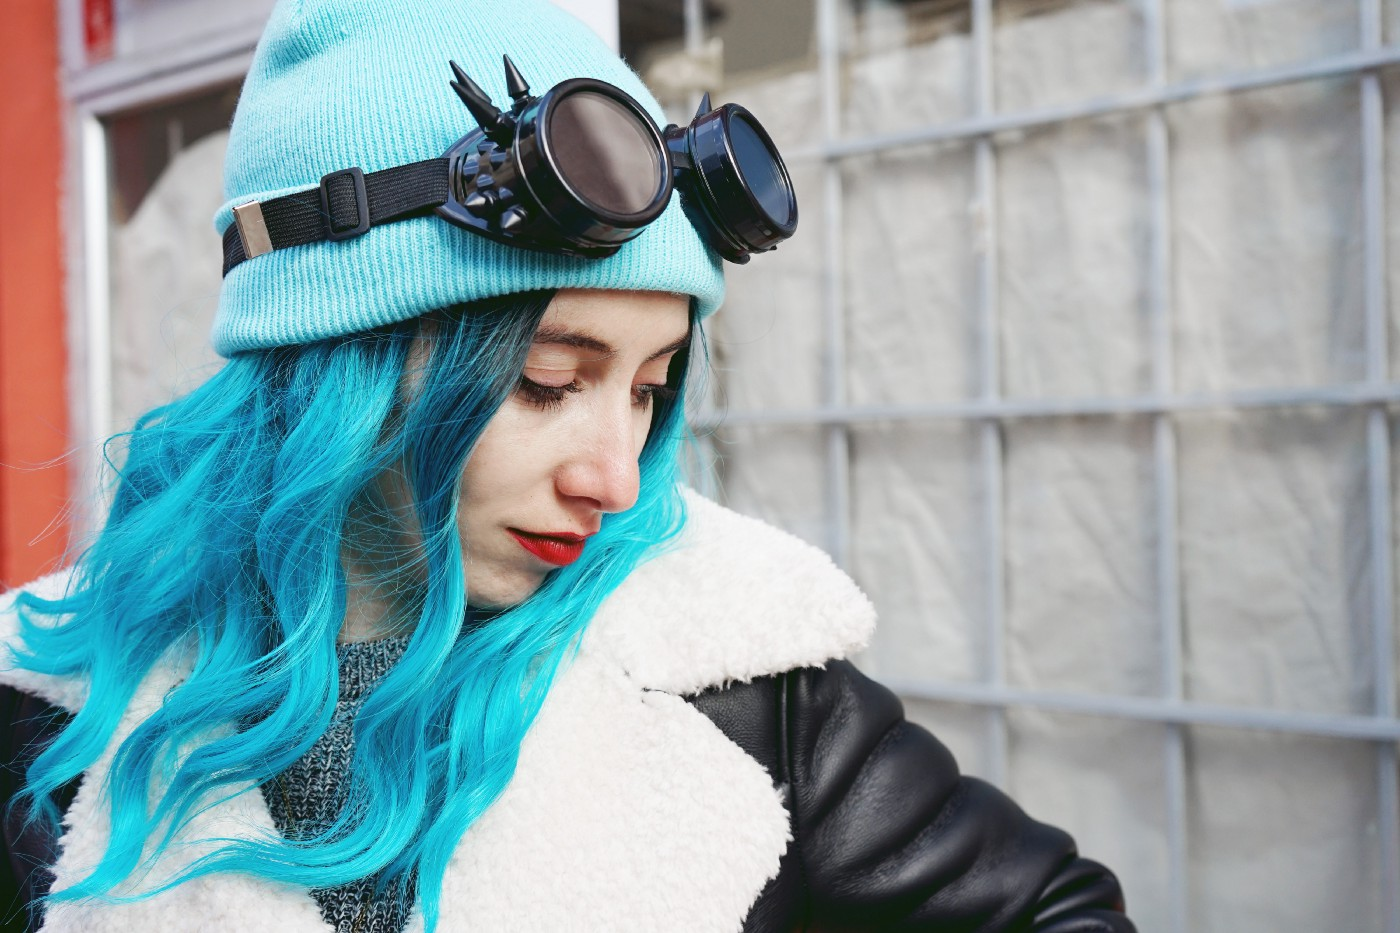 Woman with long electric blue hair in a black leather jacket and cyberpunk spike goggles over a blue beanie looking away from the camera